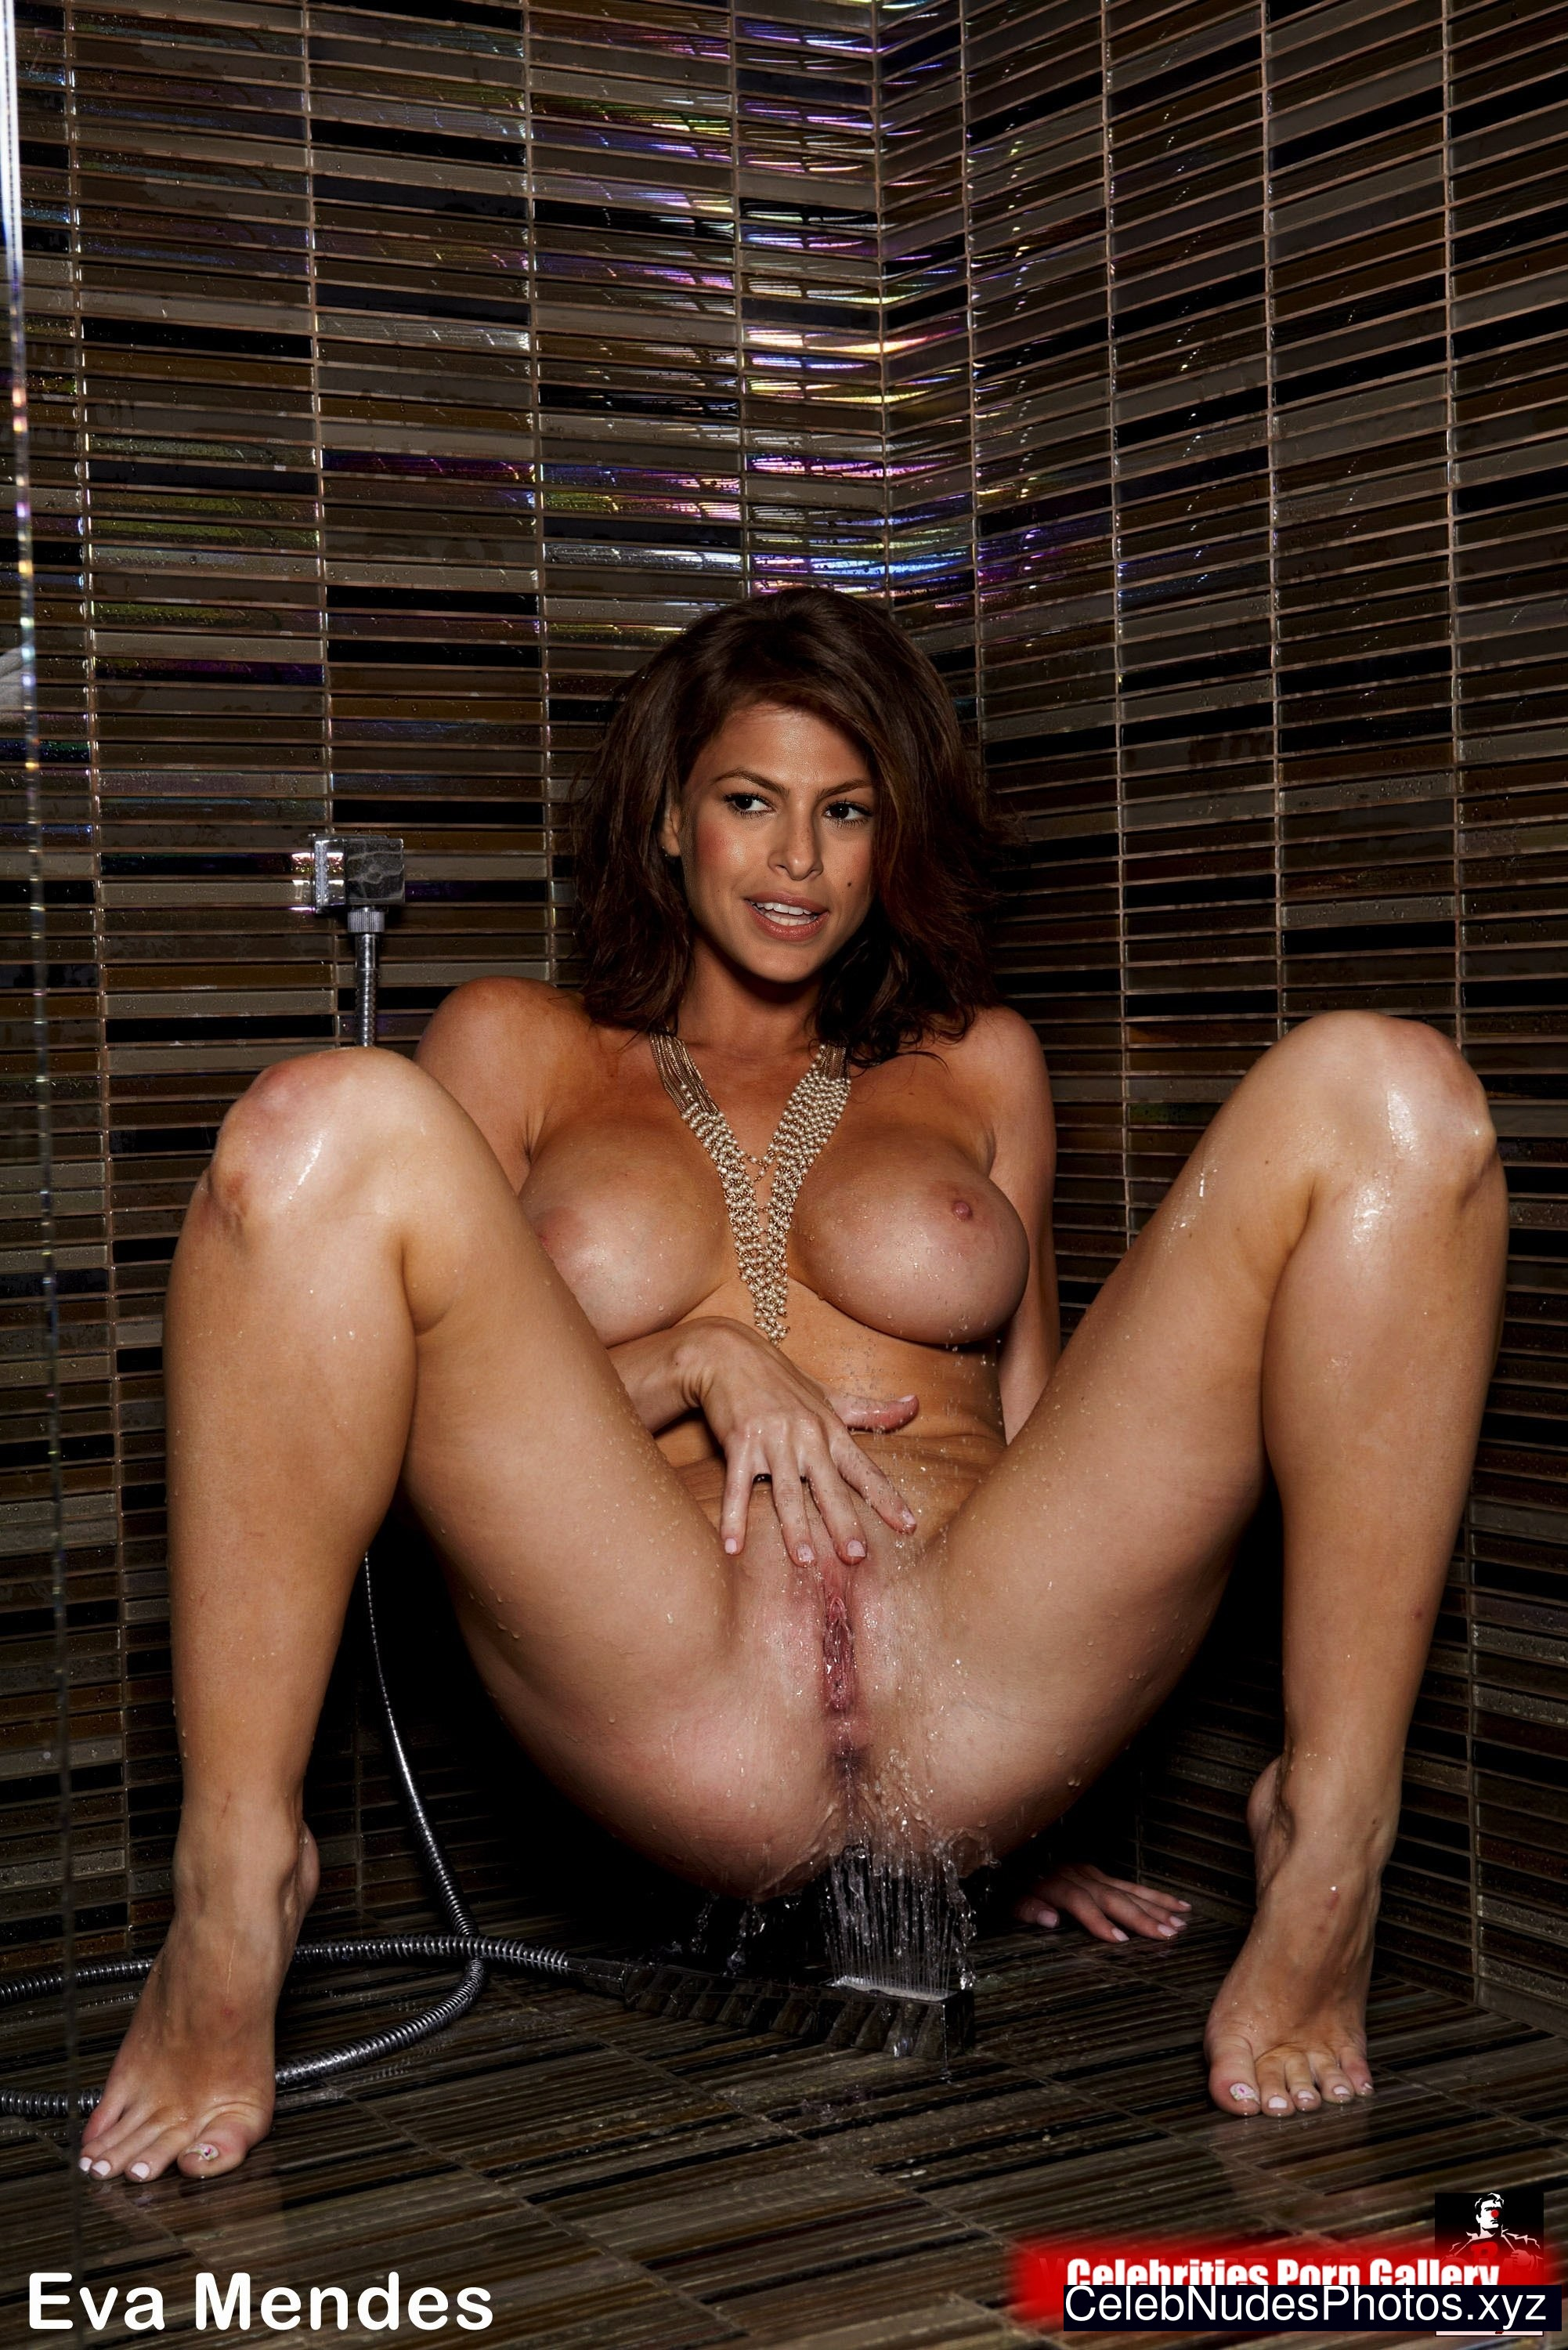 Like eva mendes nude picture